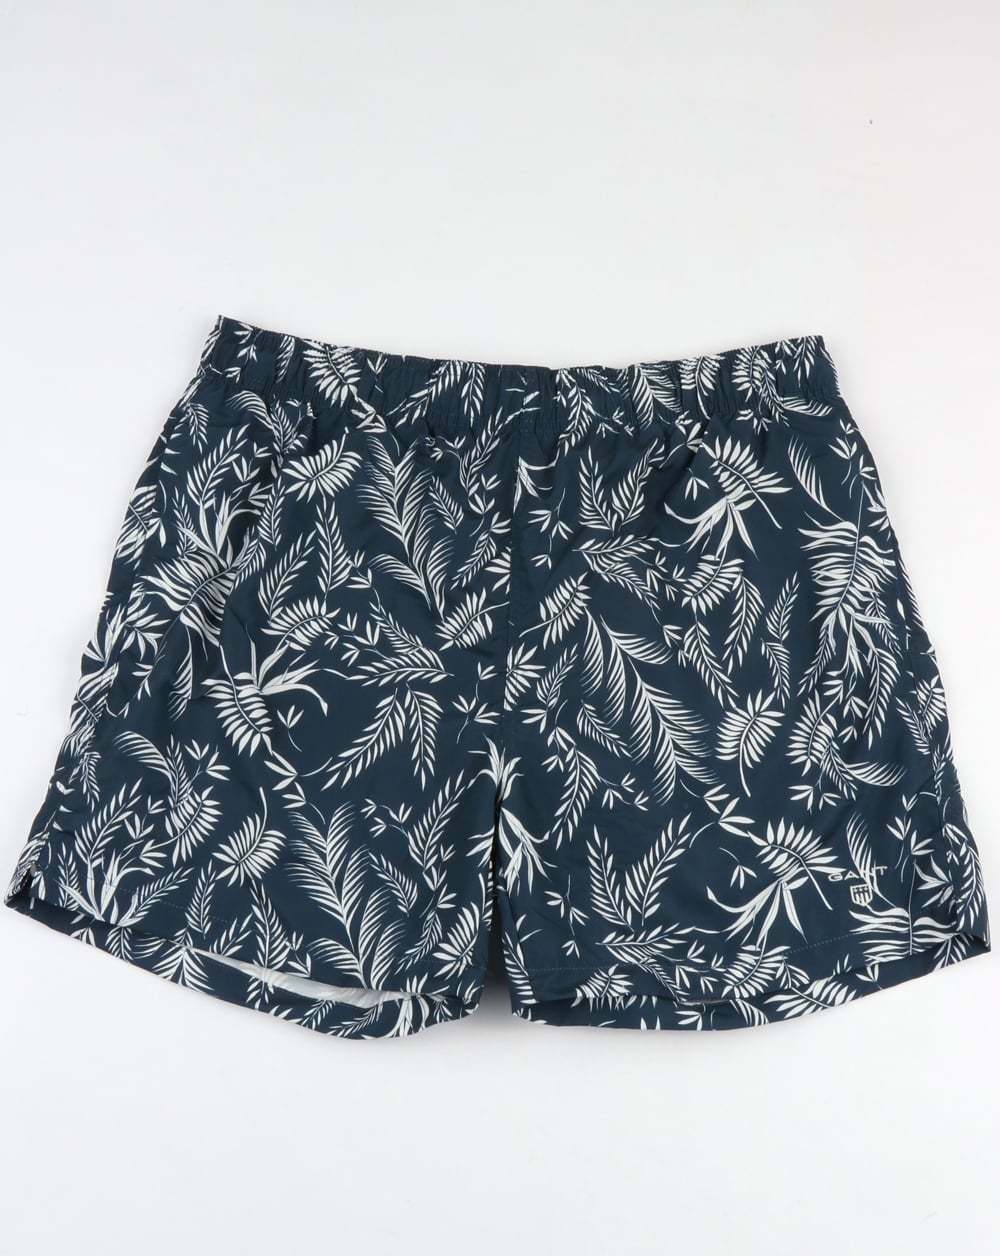 Gant Thin Leaves Swim Shorts in Navy bluee - swimmers, beach shorts, holiday